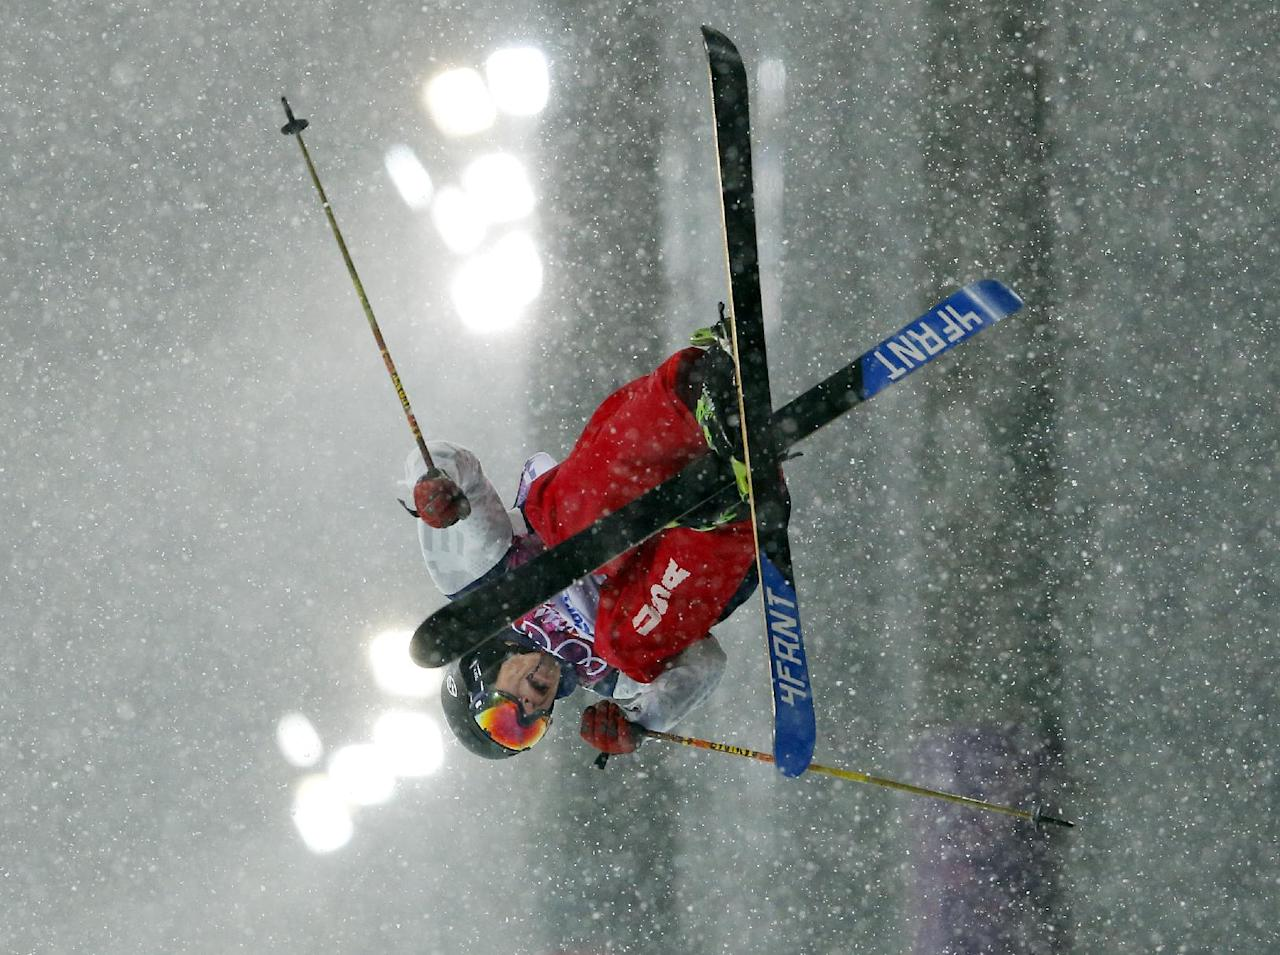 David Wise of the United States gets air during the men's ski halfpipe final at the Rosa Khutor Extreme Park, at the 2014 Winter Olympics, Tuesday, Feb. 18, 2014, in Krasnaya Polyana, Russia. (AP Photo/Sergei Grits)